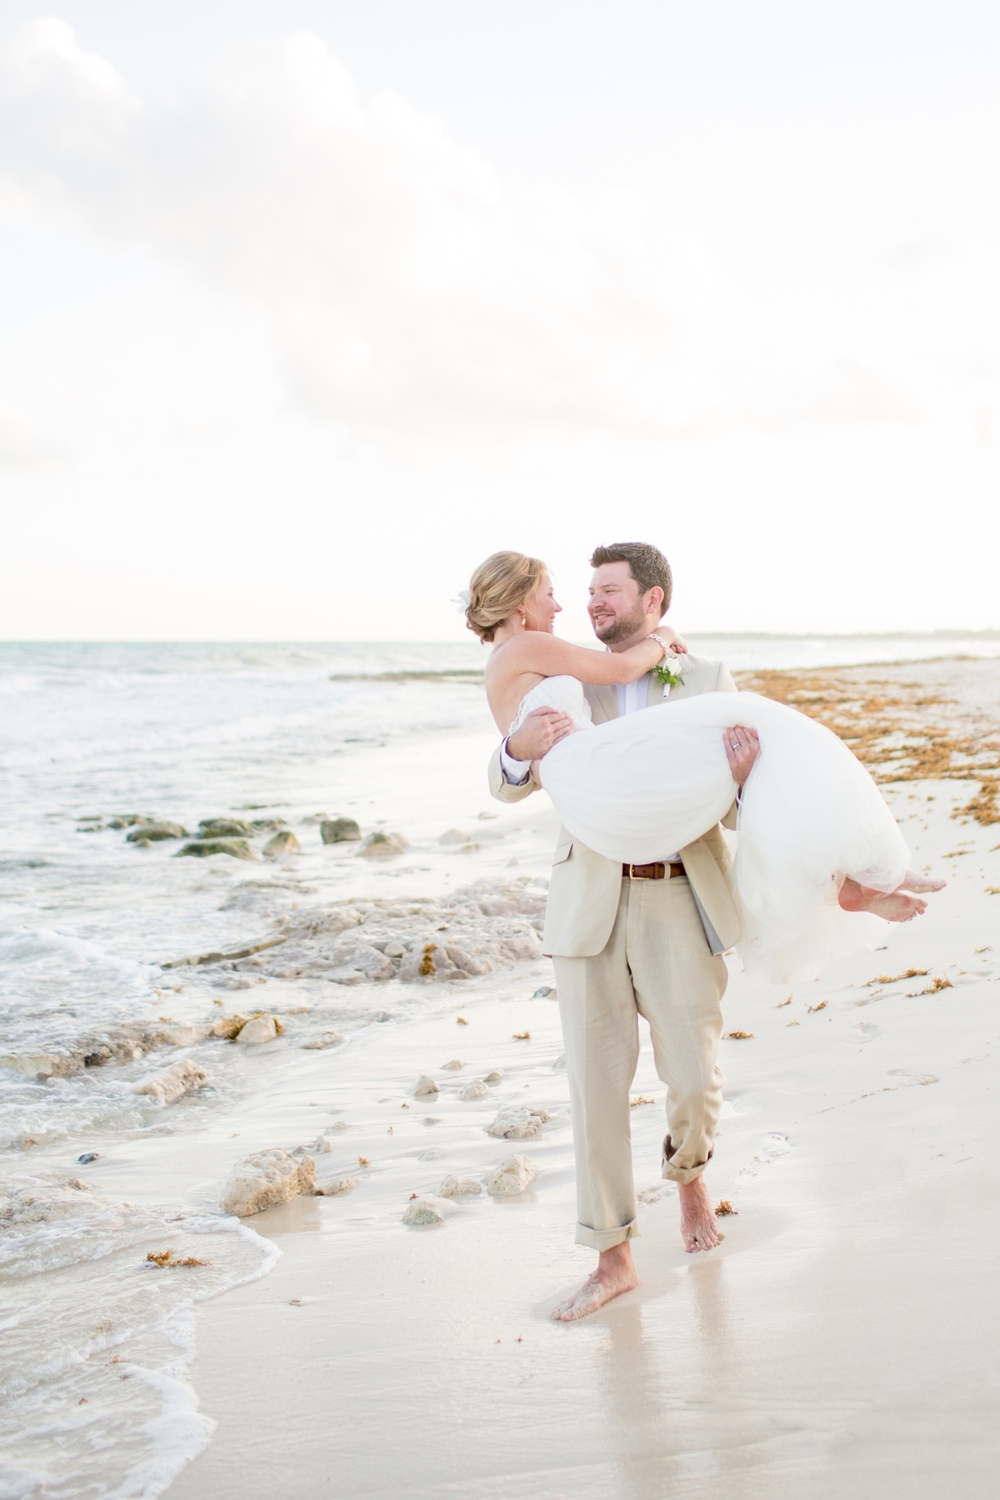 Morosoff Wedding 4-Bride & Groom Portraits-416_anna grace photography destination wedding photographer playa del carmen mexico photo.jpg